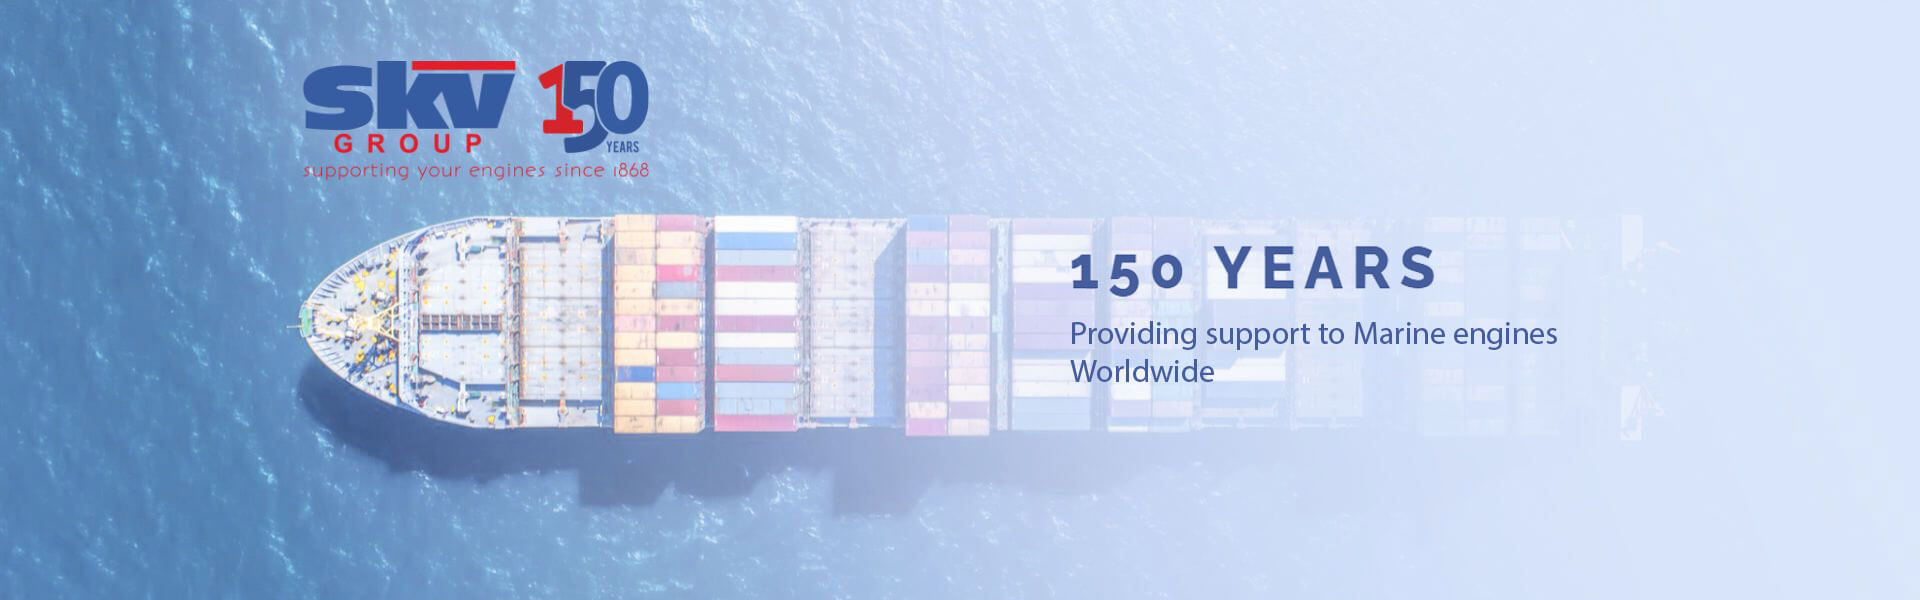 SKV Group - 150 years providing support to marine engines worldwide